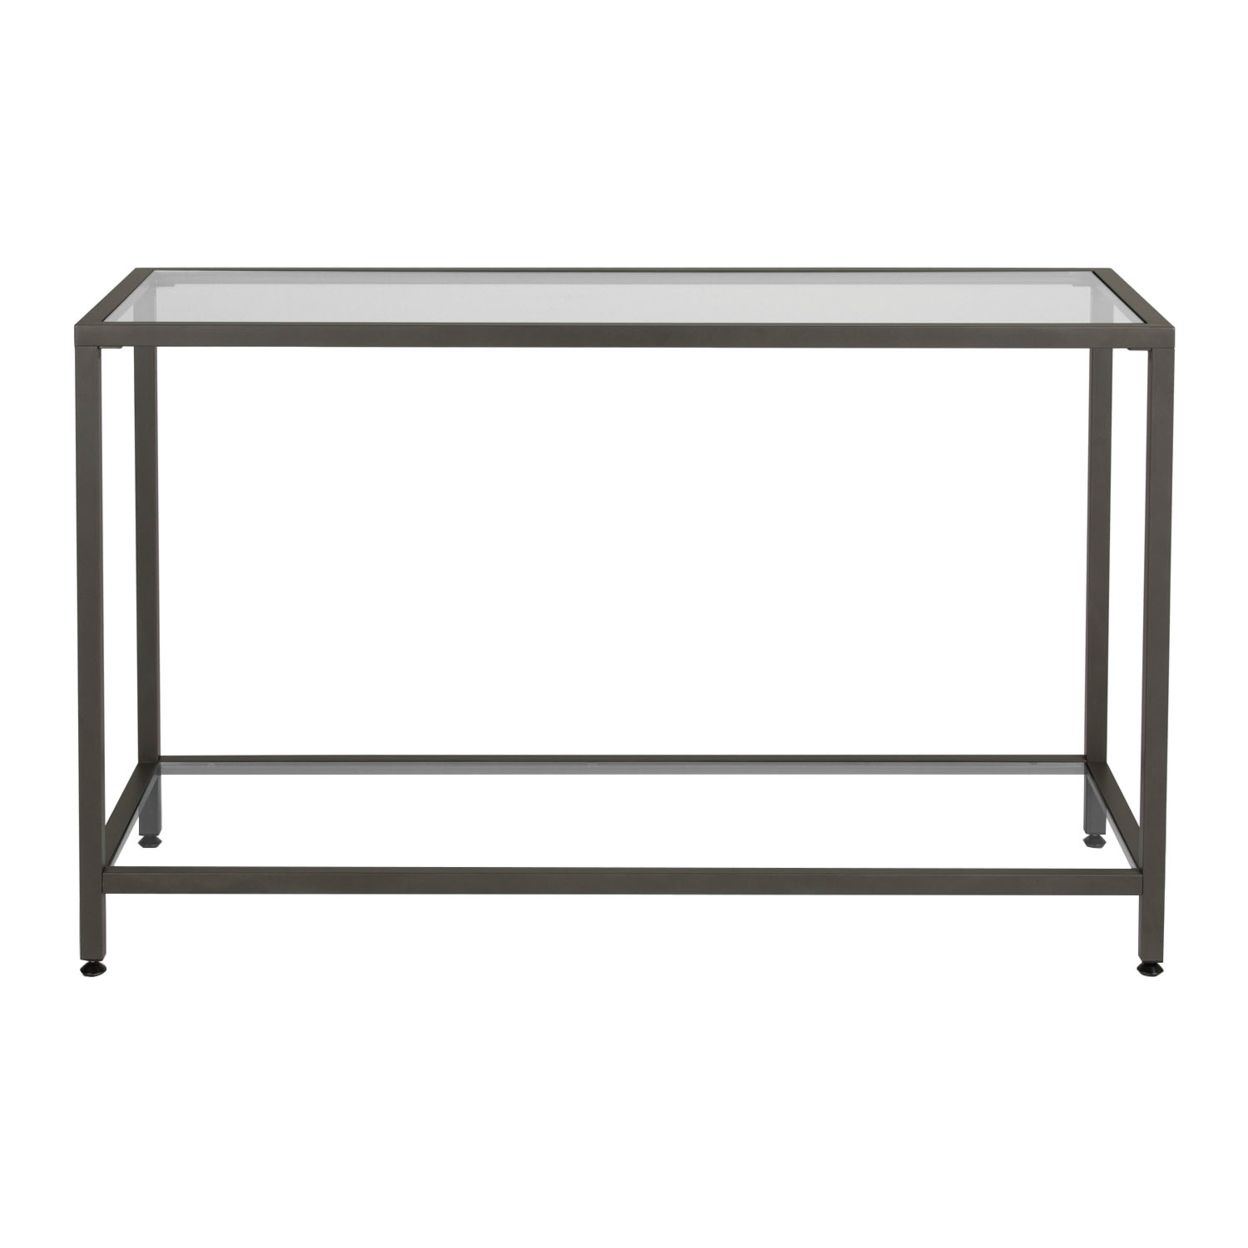 Studio Designs Camber Collection Rectangle Clear Glass Console Table - Pewter